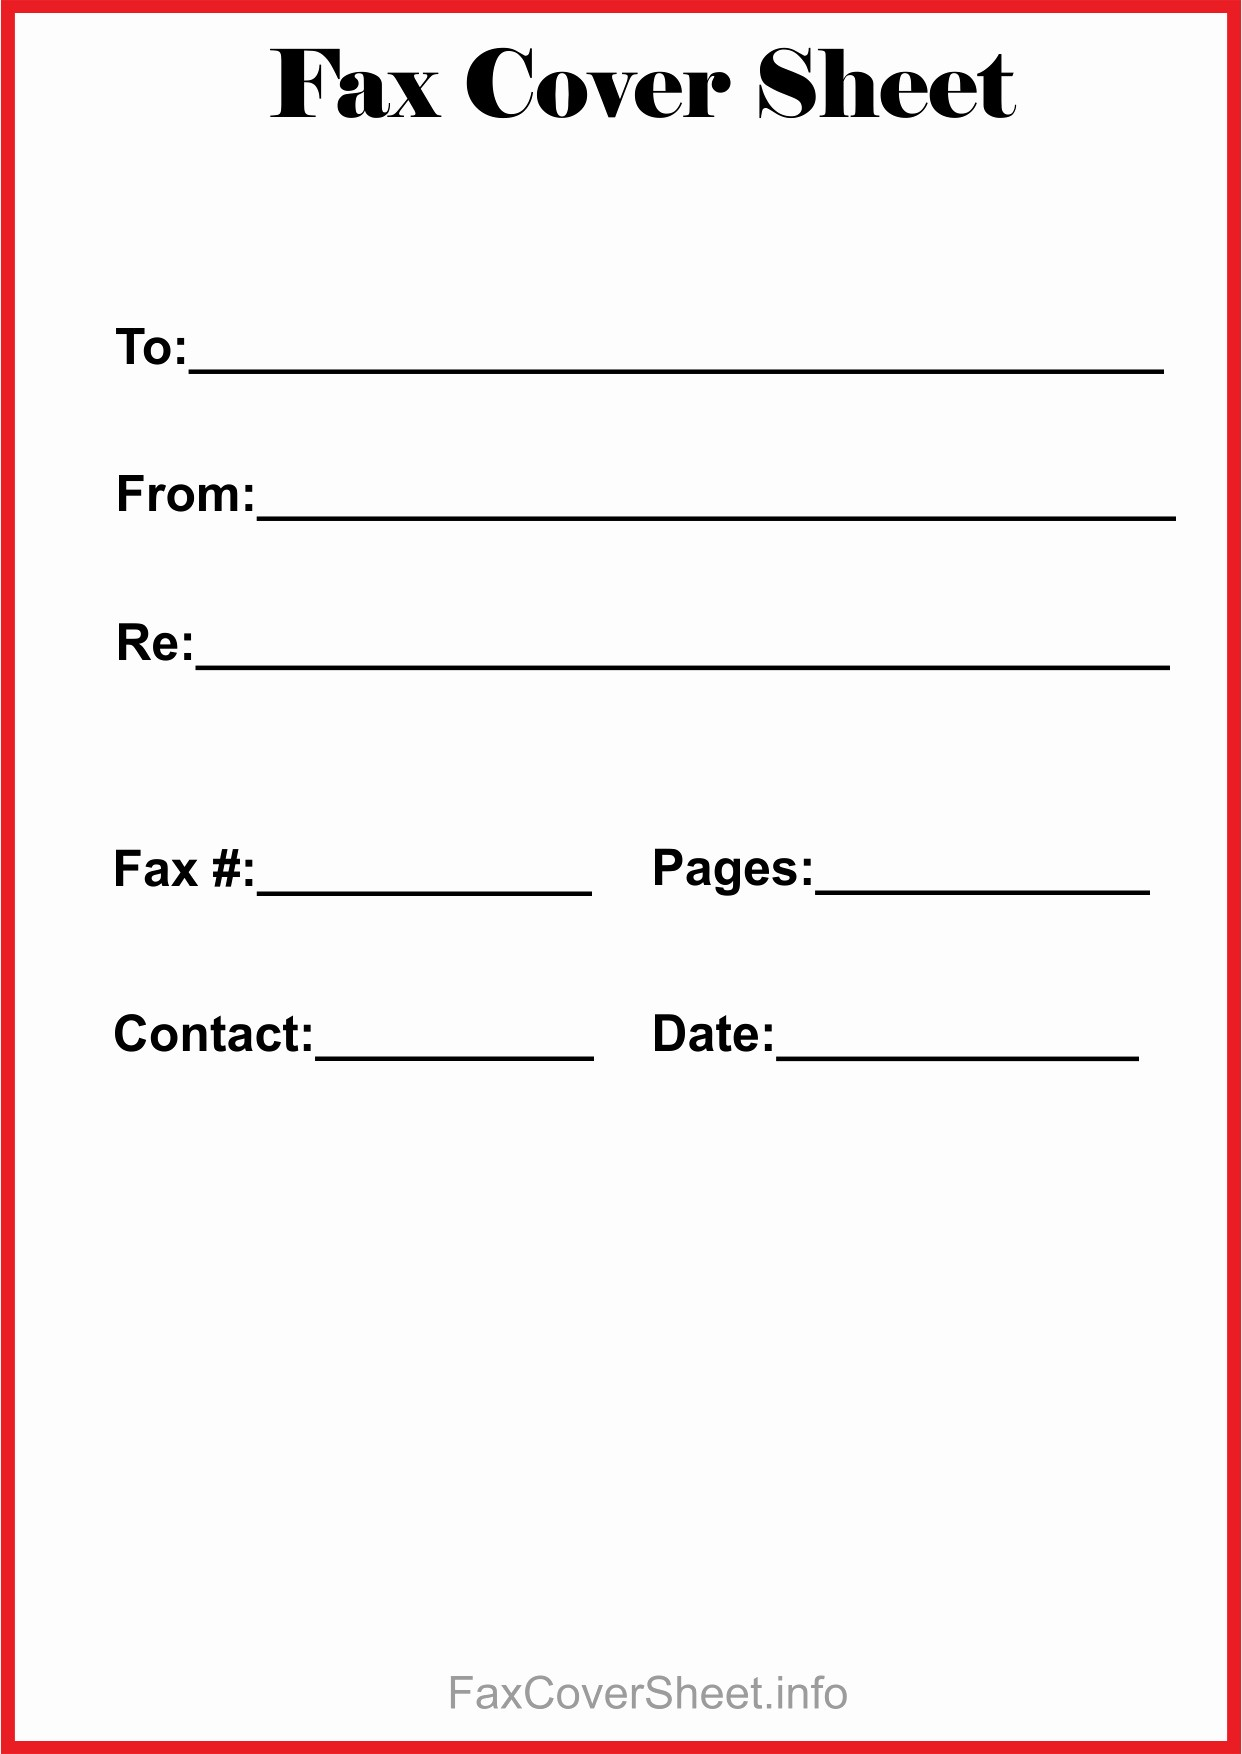 Fax Cover Sheet for Word Luxury Free Fax Cover Sheet Template Download